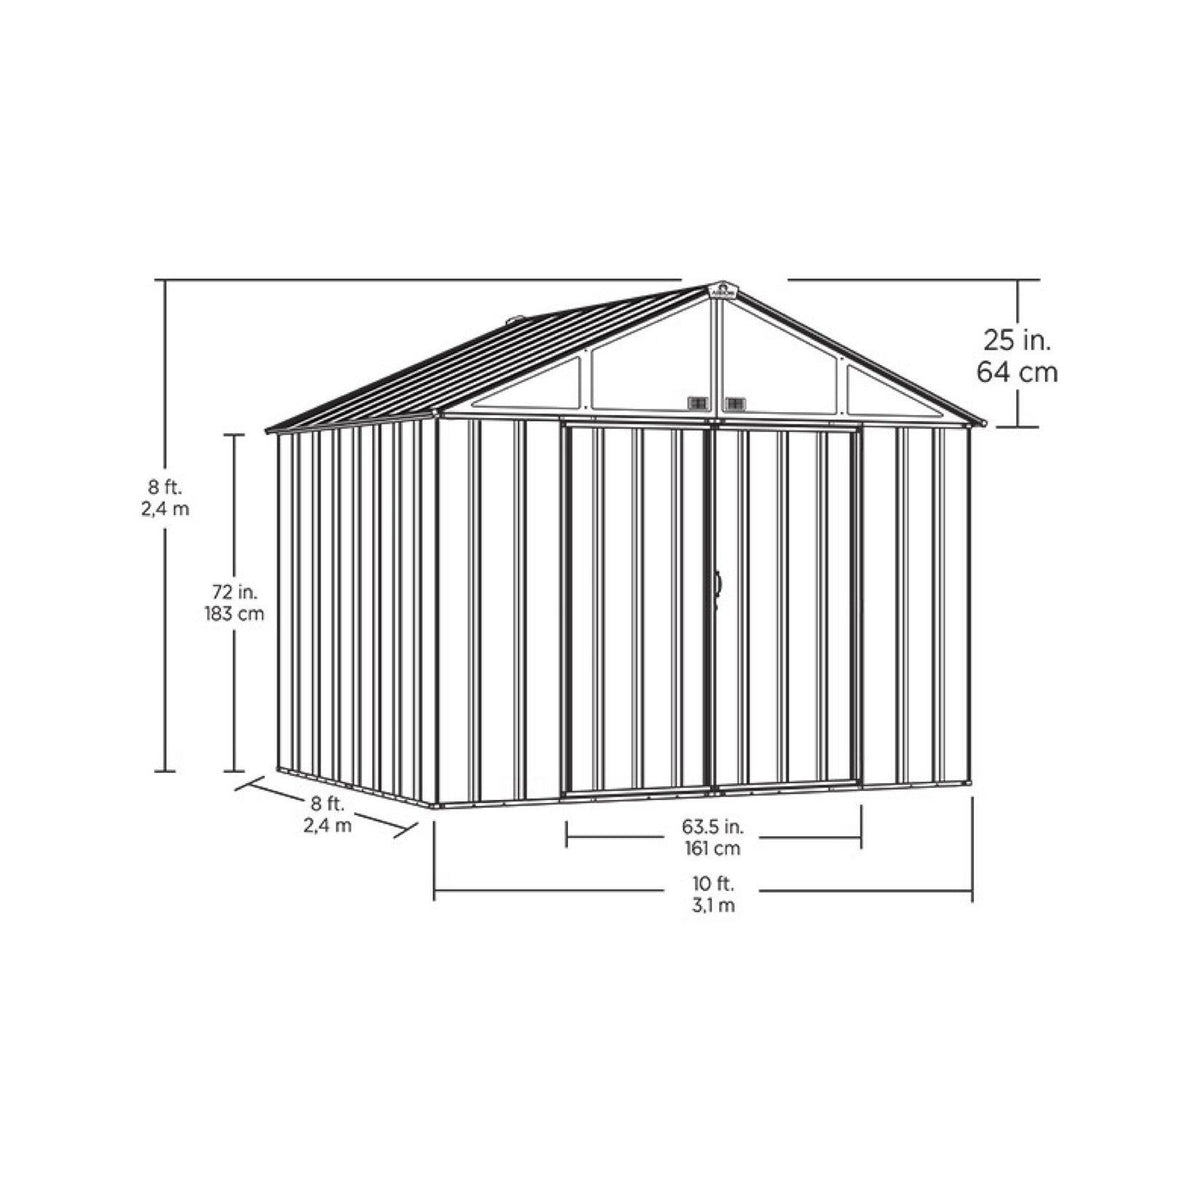 Arrow EZEE Shed Extra High Gable Steel Storage Shed, Cream, 10 x 8 ft.